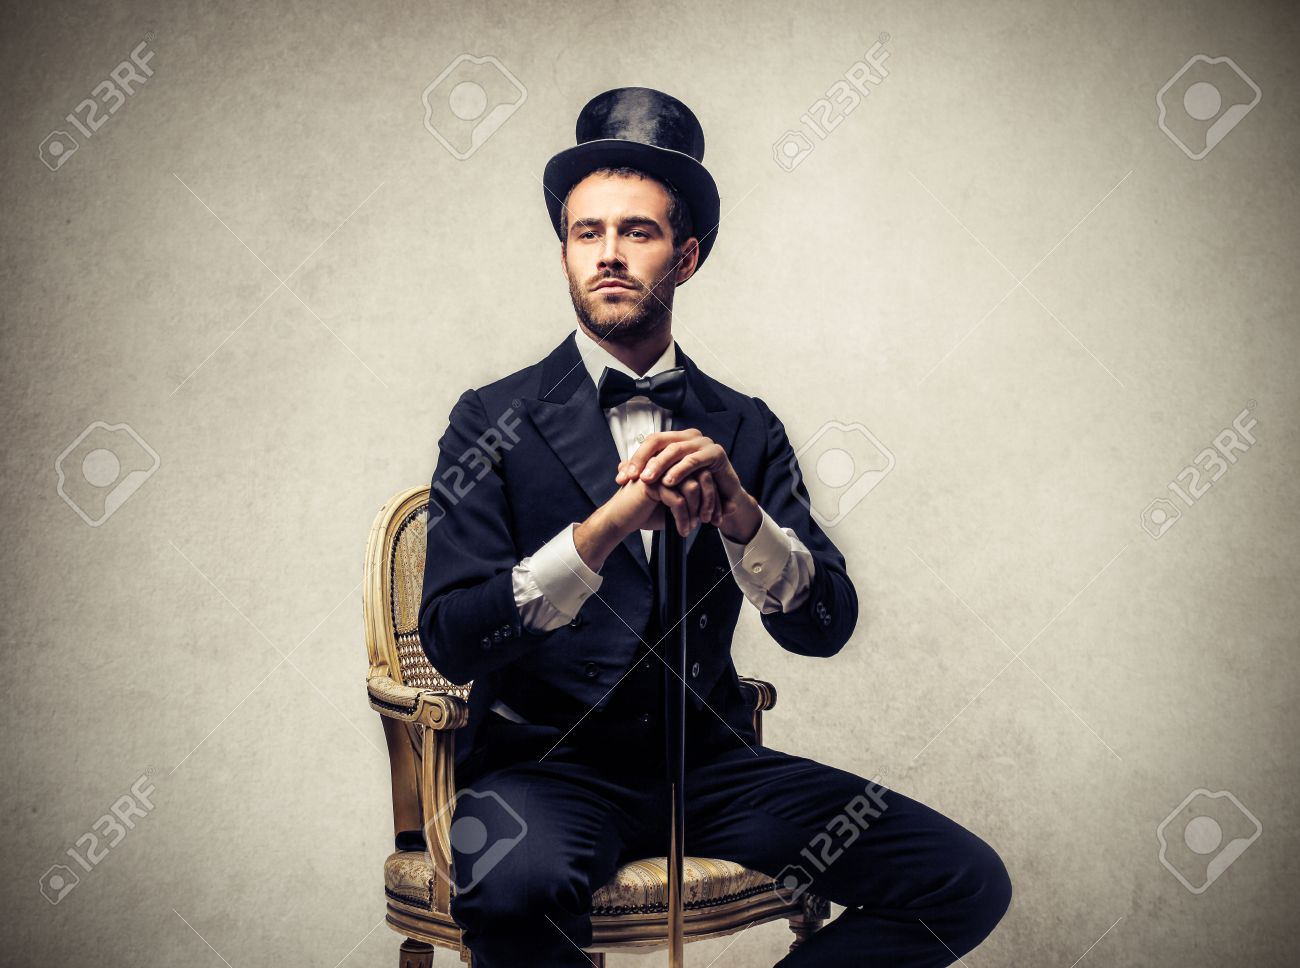 rich man sitting on a chair Stock Photo - 22756643